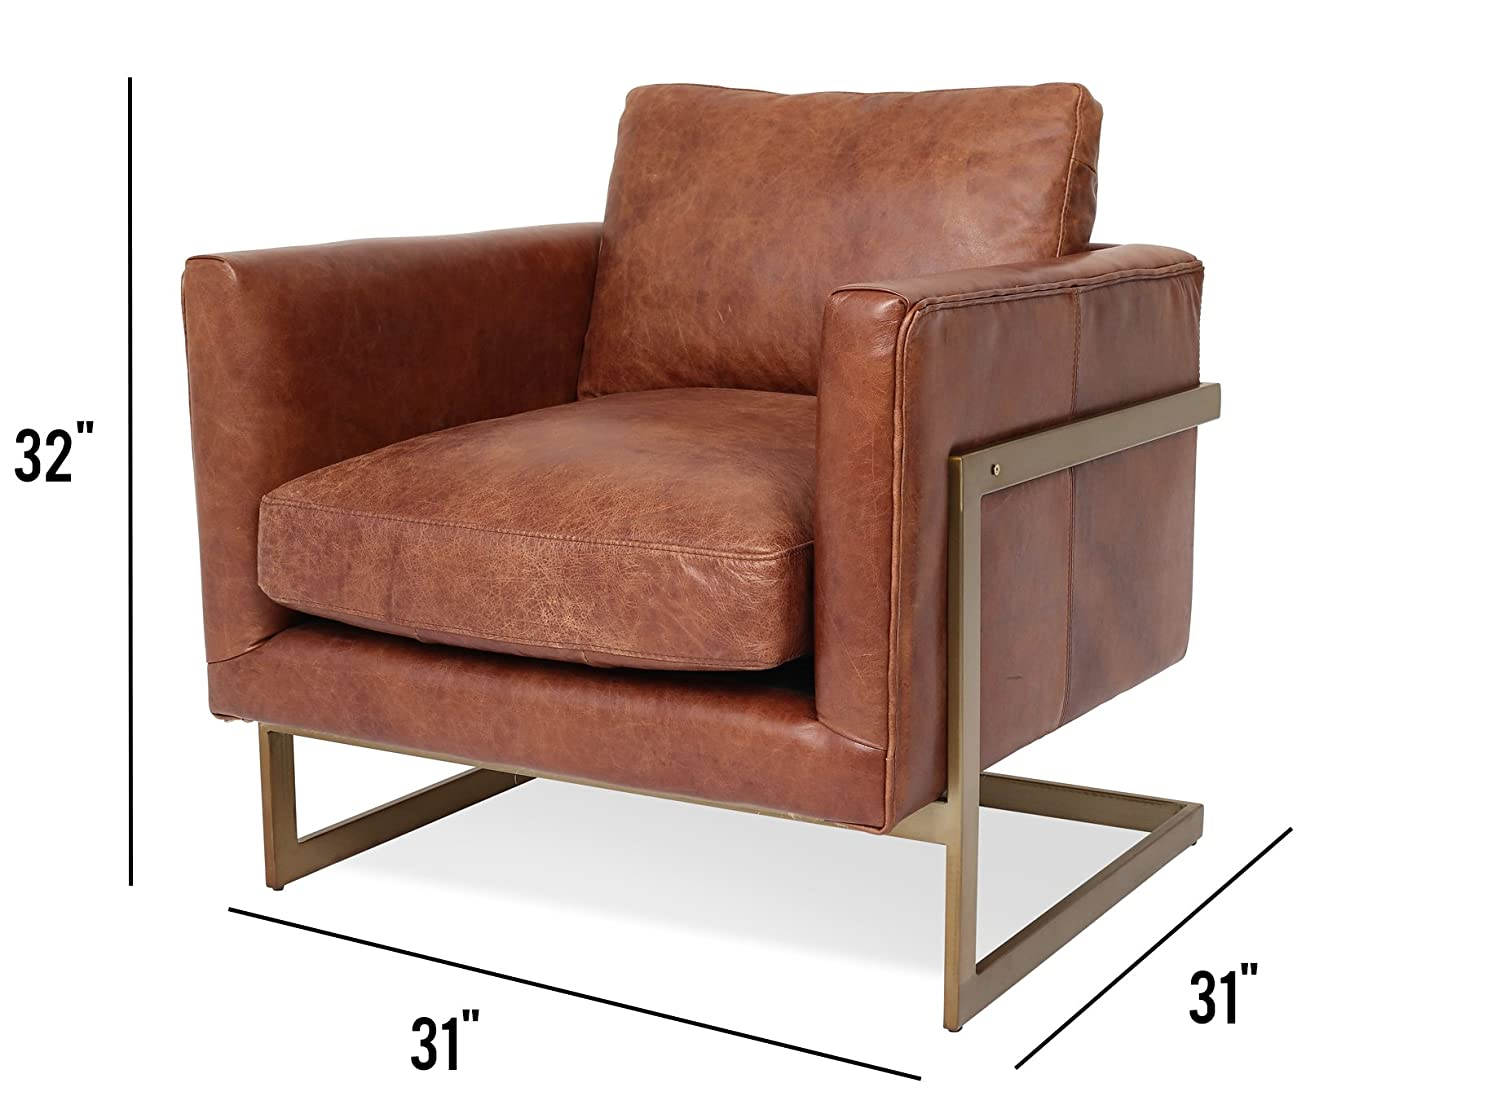 Edloe Finch EF-Z4-LC004 Gustaaf – Modern Leather Accent Chair Lounge Chair Living Room – Cognac Brown